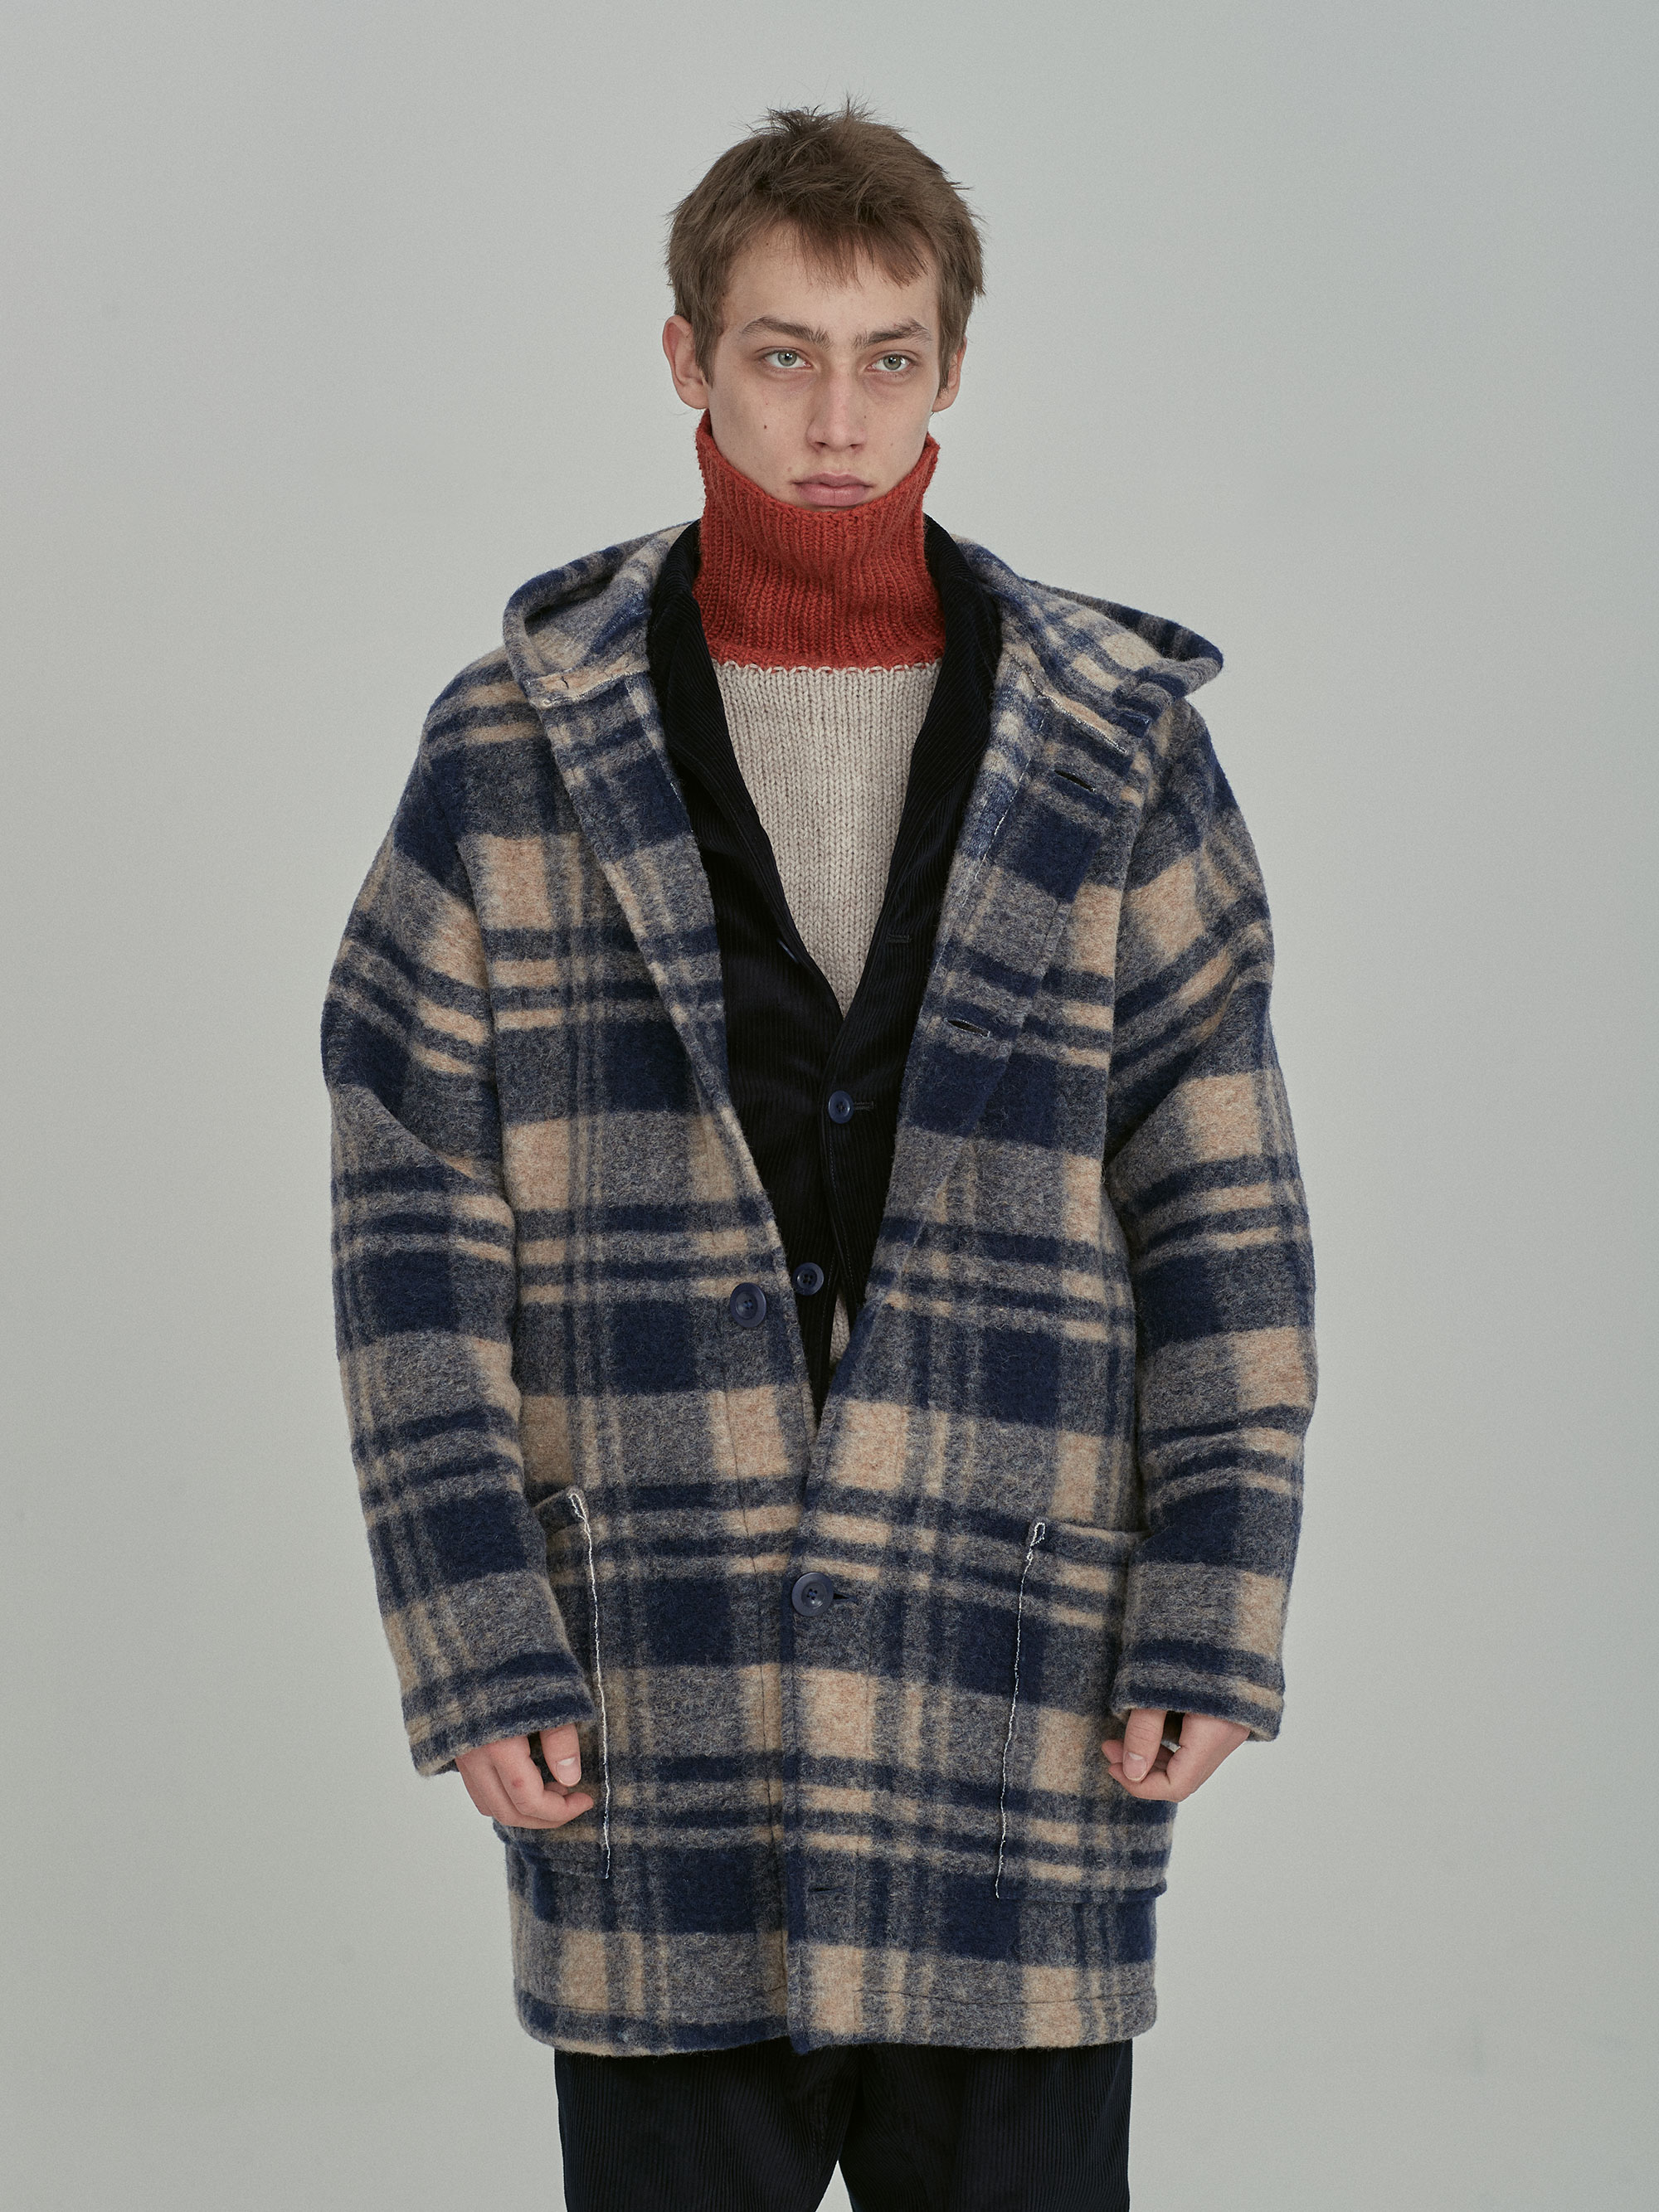 nc_aw19_authentic_011_web